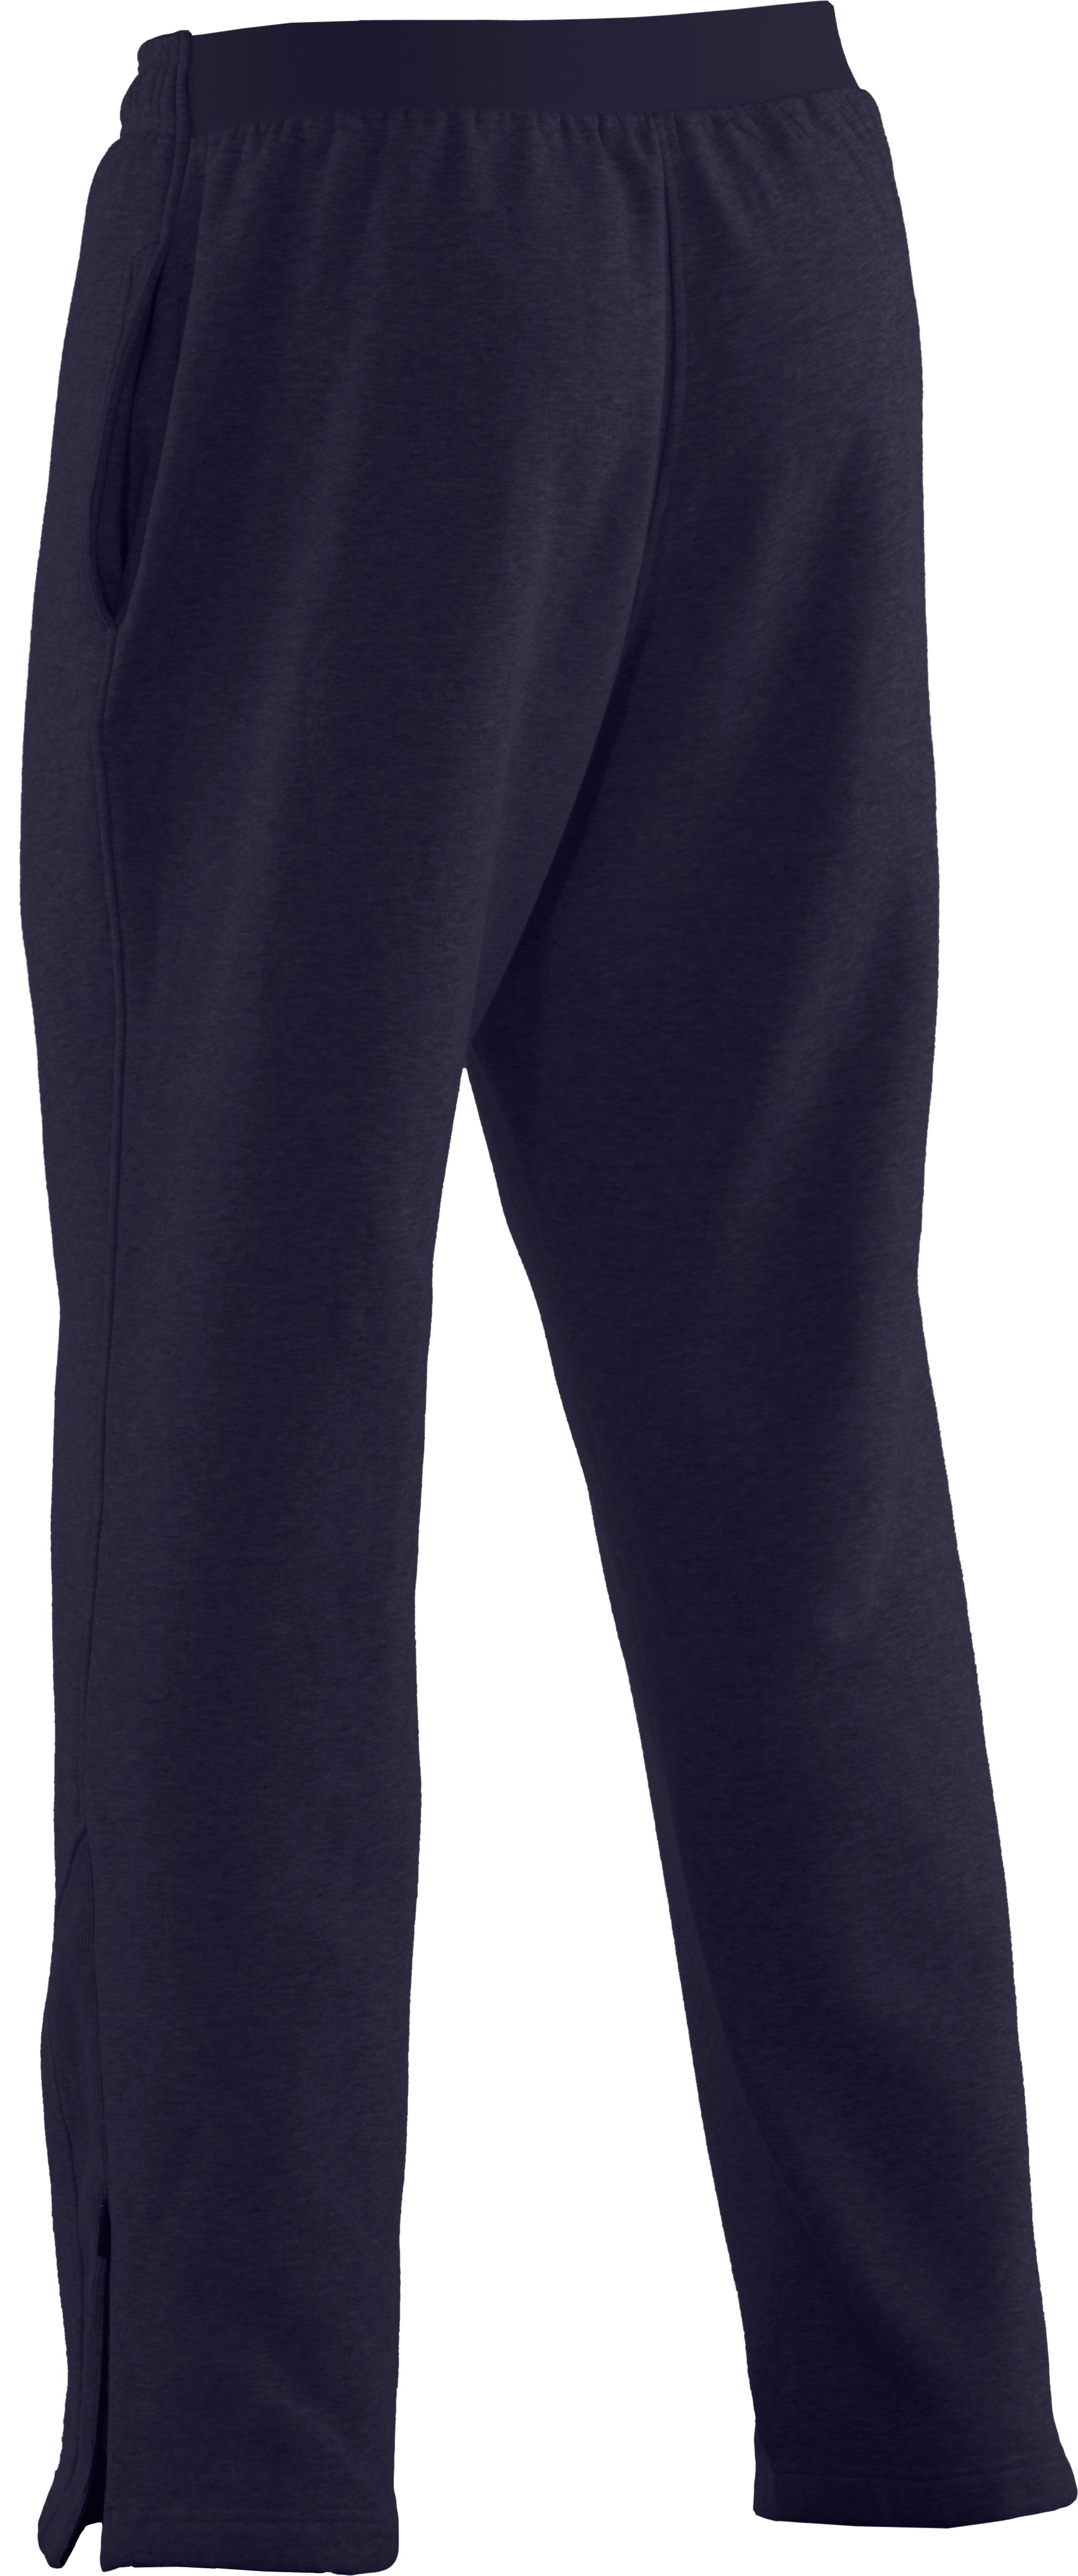 Men's Charged Cotton® Storm Sideline Pants, Midnight Navy, undefined